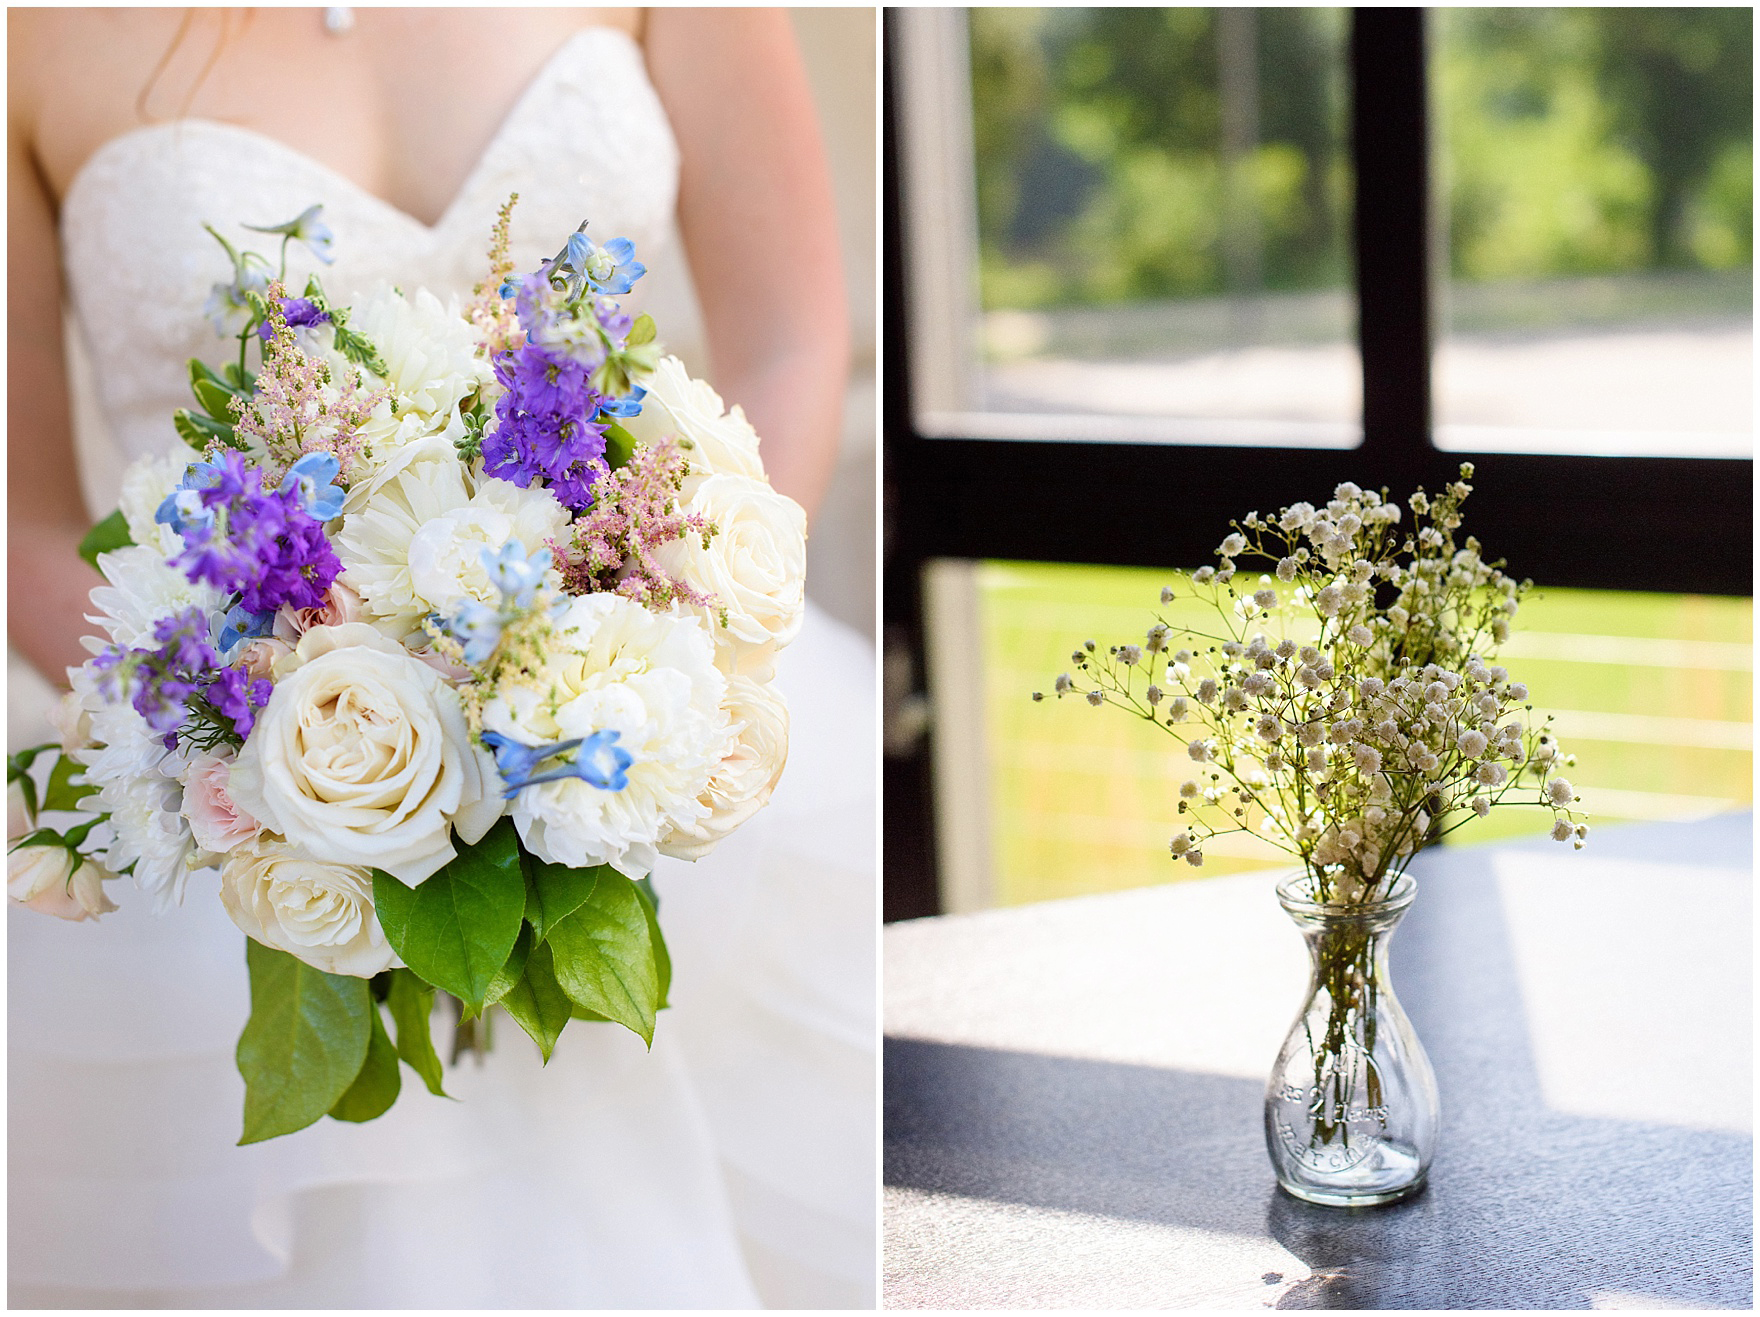 The bride's bouquet with white roses and purple and blue accents for a University of Notre Dame wedding.